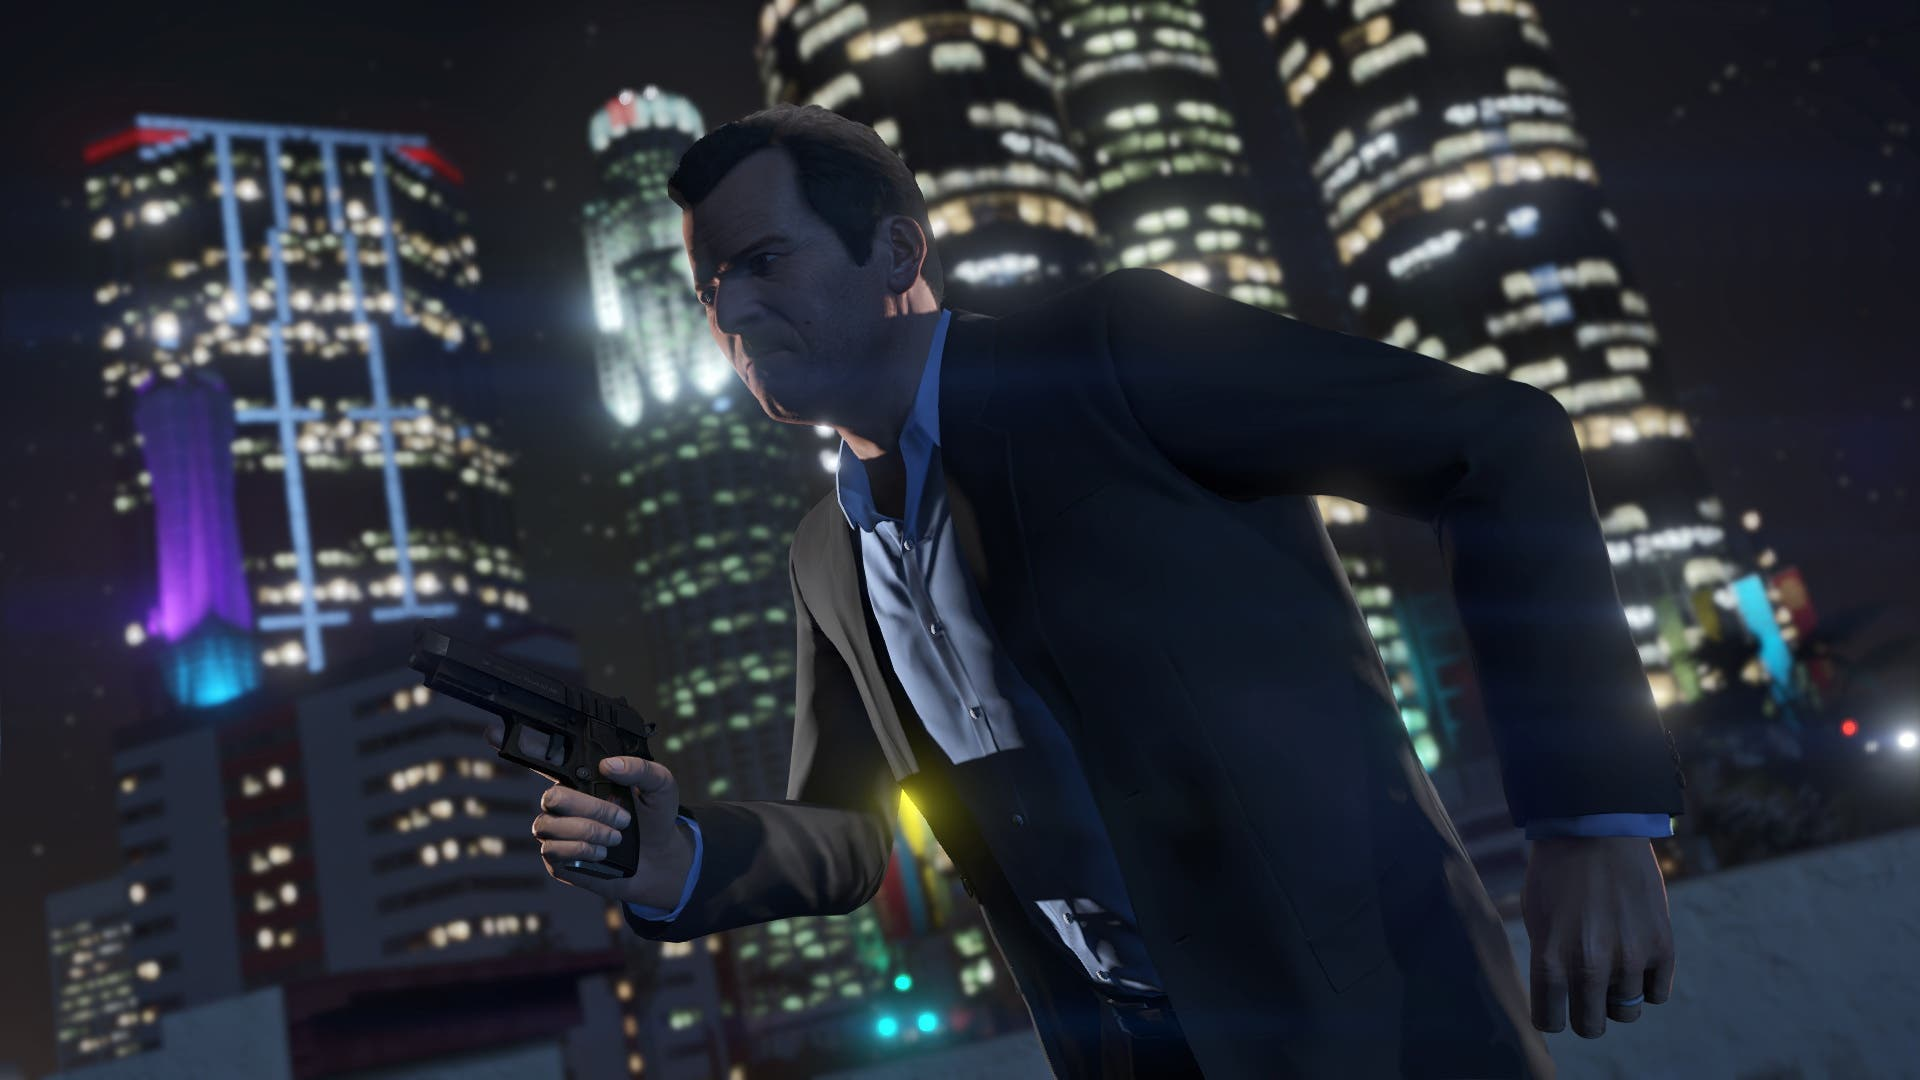 GTAVPS4 featured